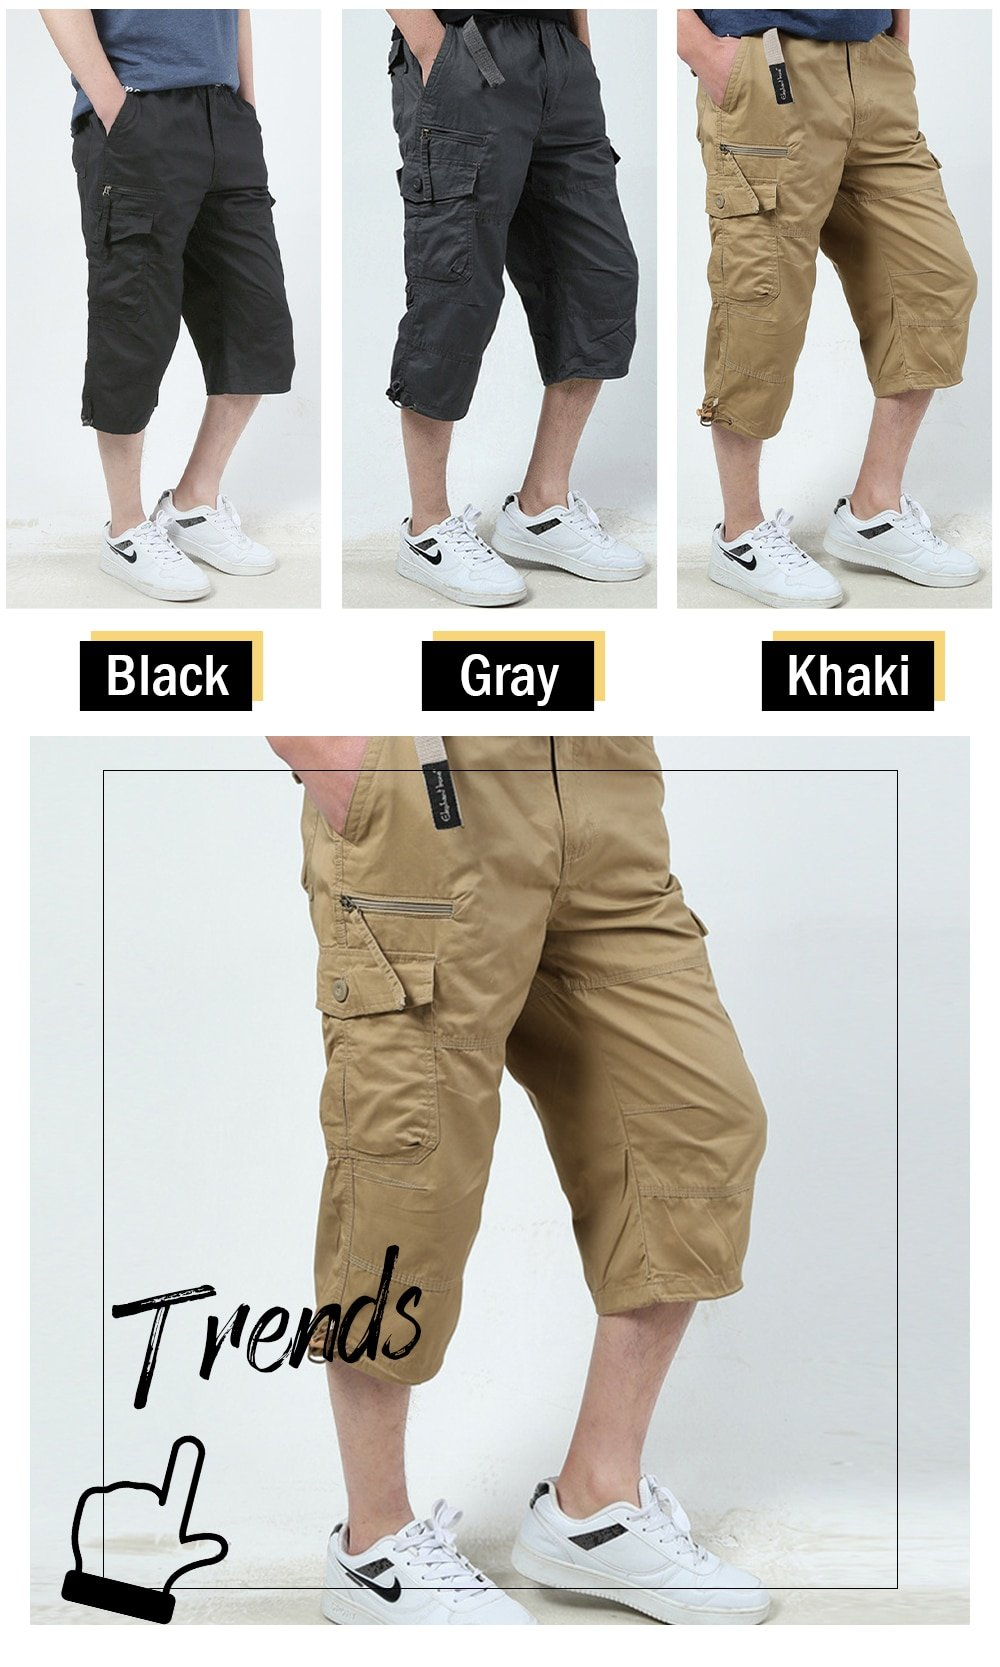 3/4 Cargo Shorts Men Classic Solid Color Summer Hot Sale Cotton Casual Work Out Outdoor Hiking Capri Short Pants with Pocket 5XL